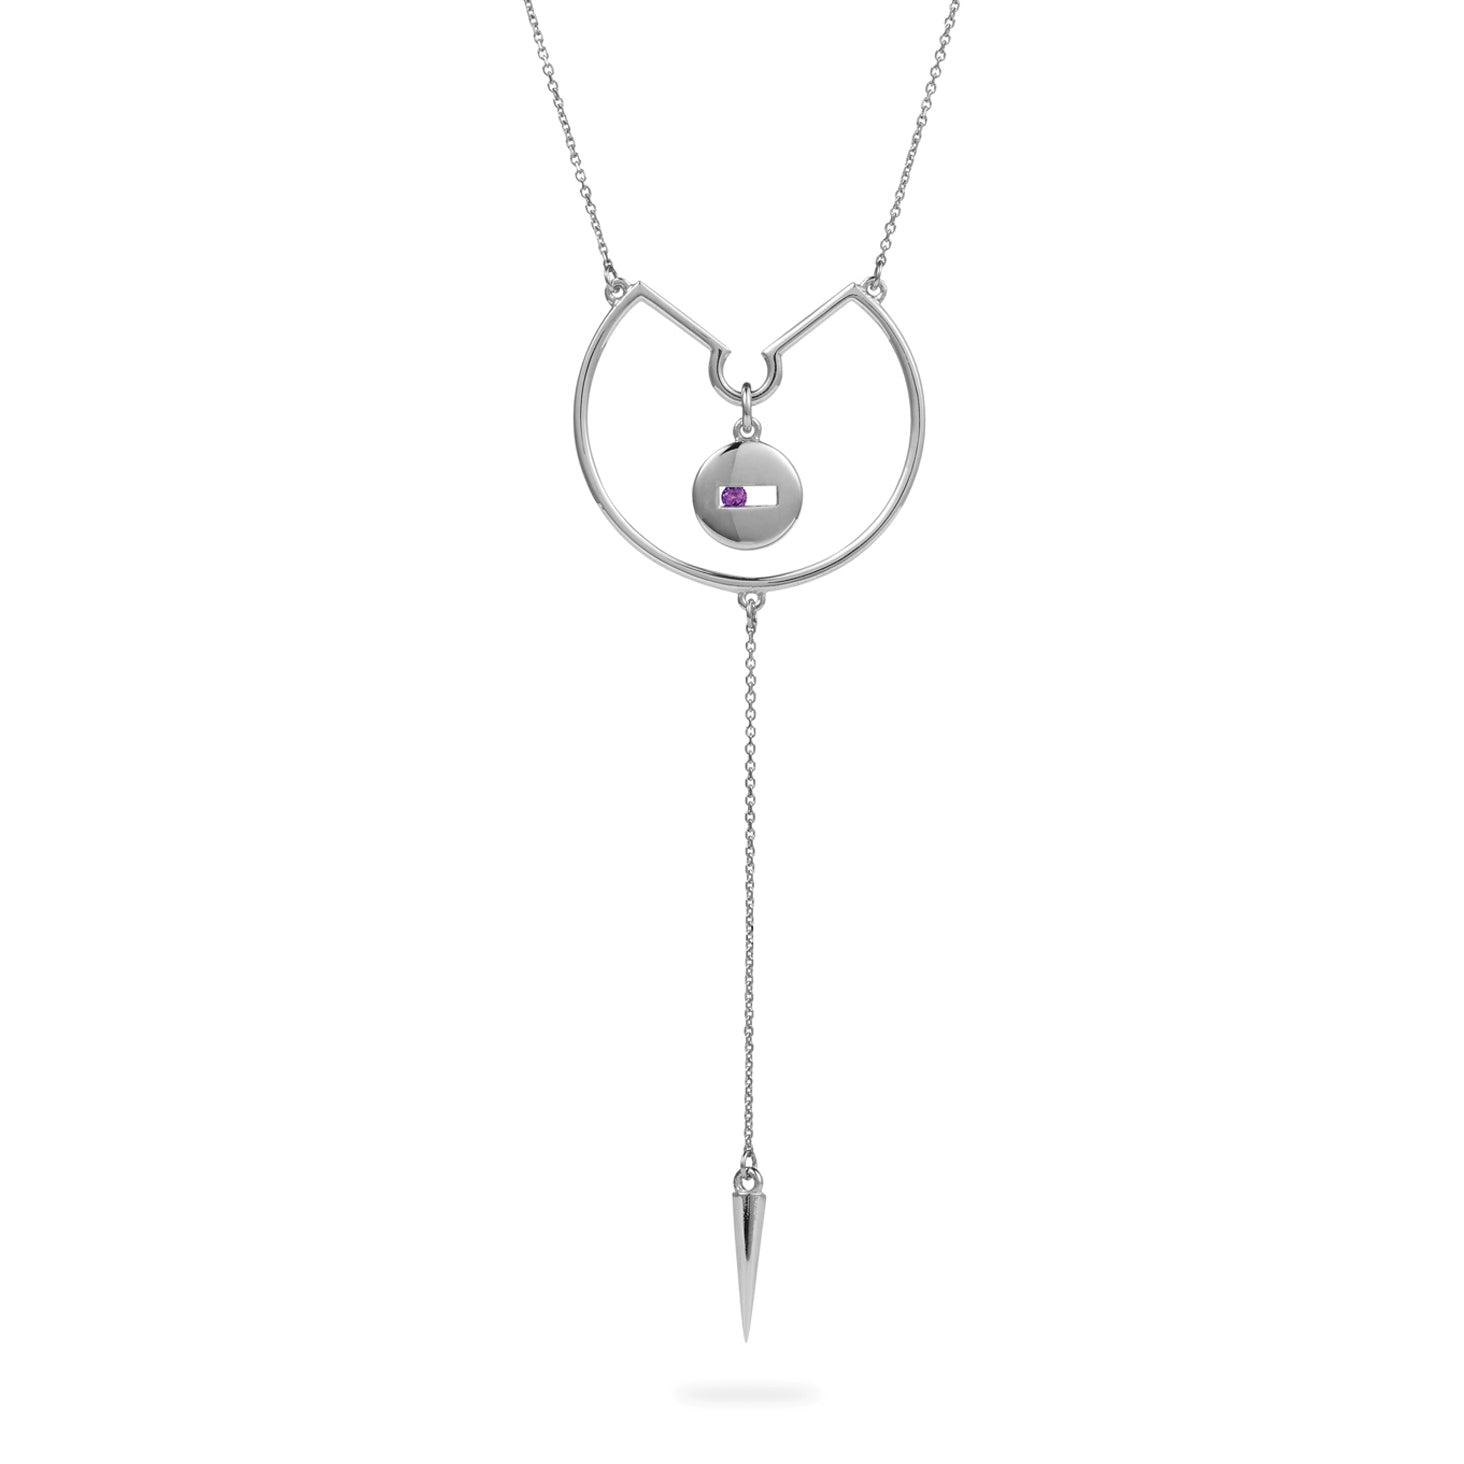 Luke Rose Jewellery silver amethyst drop necklace